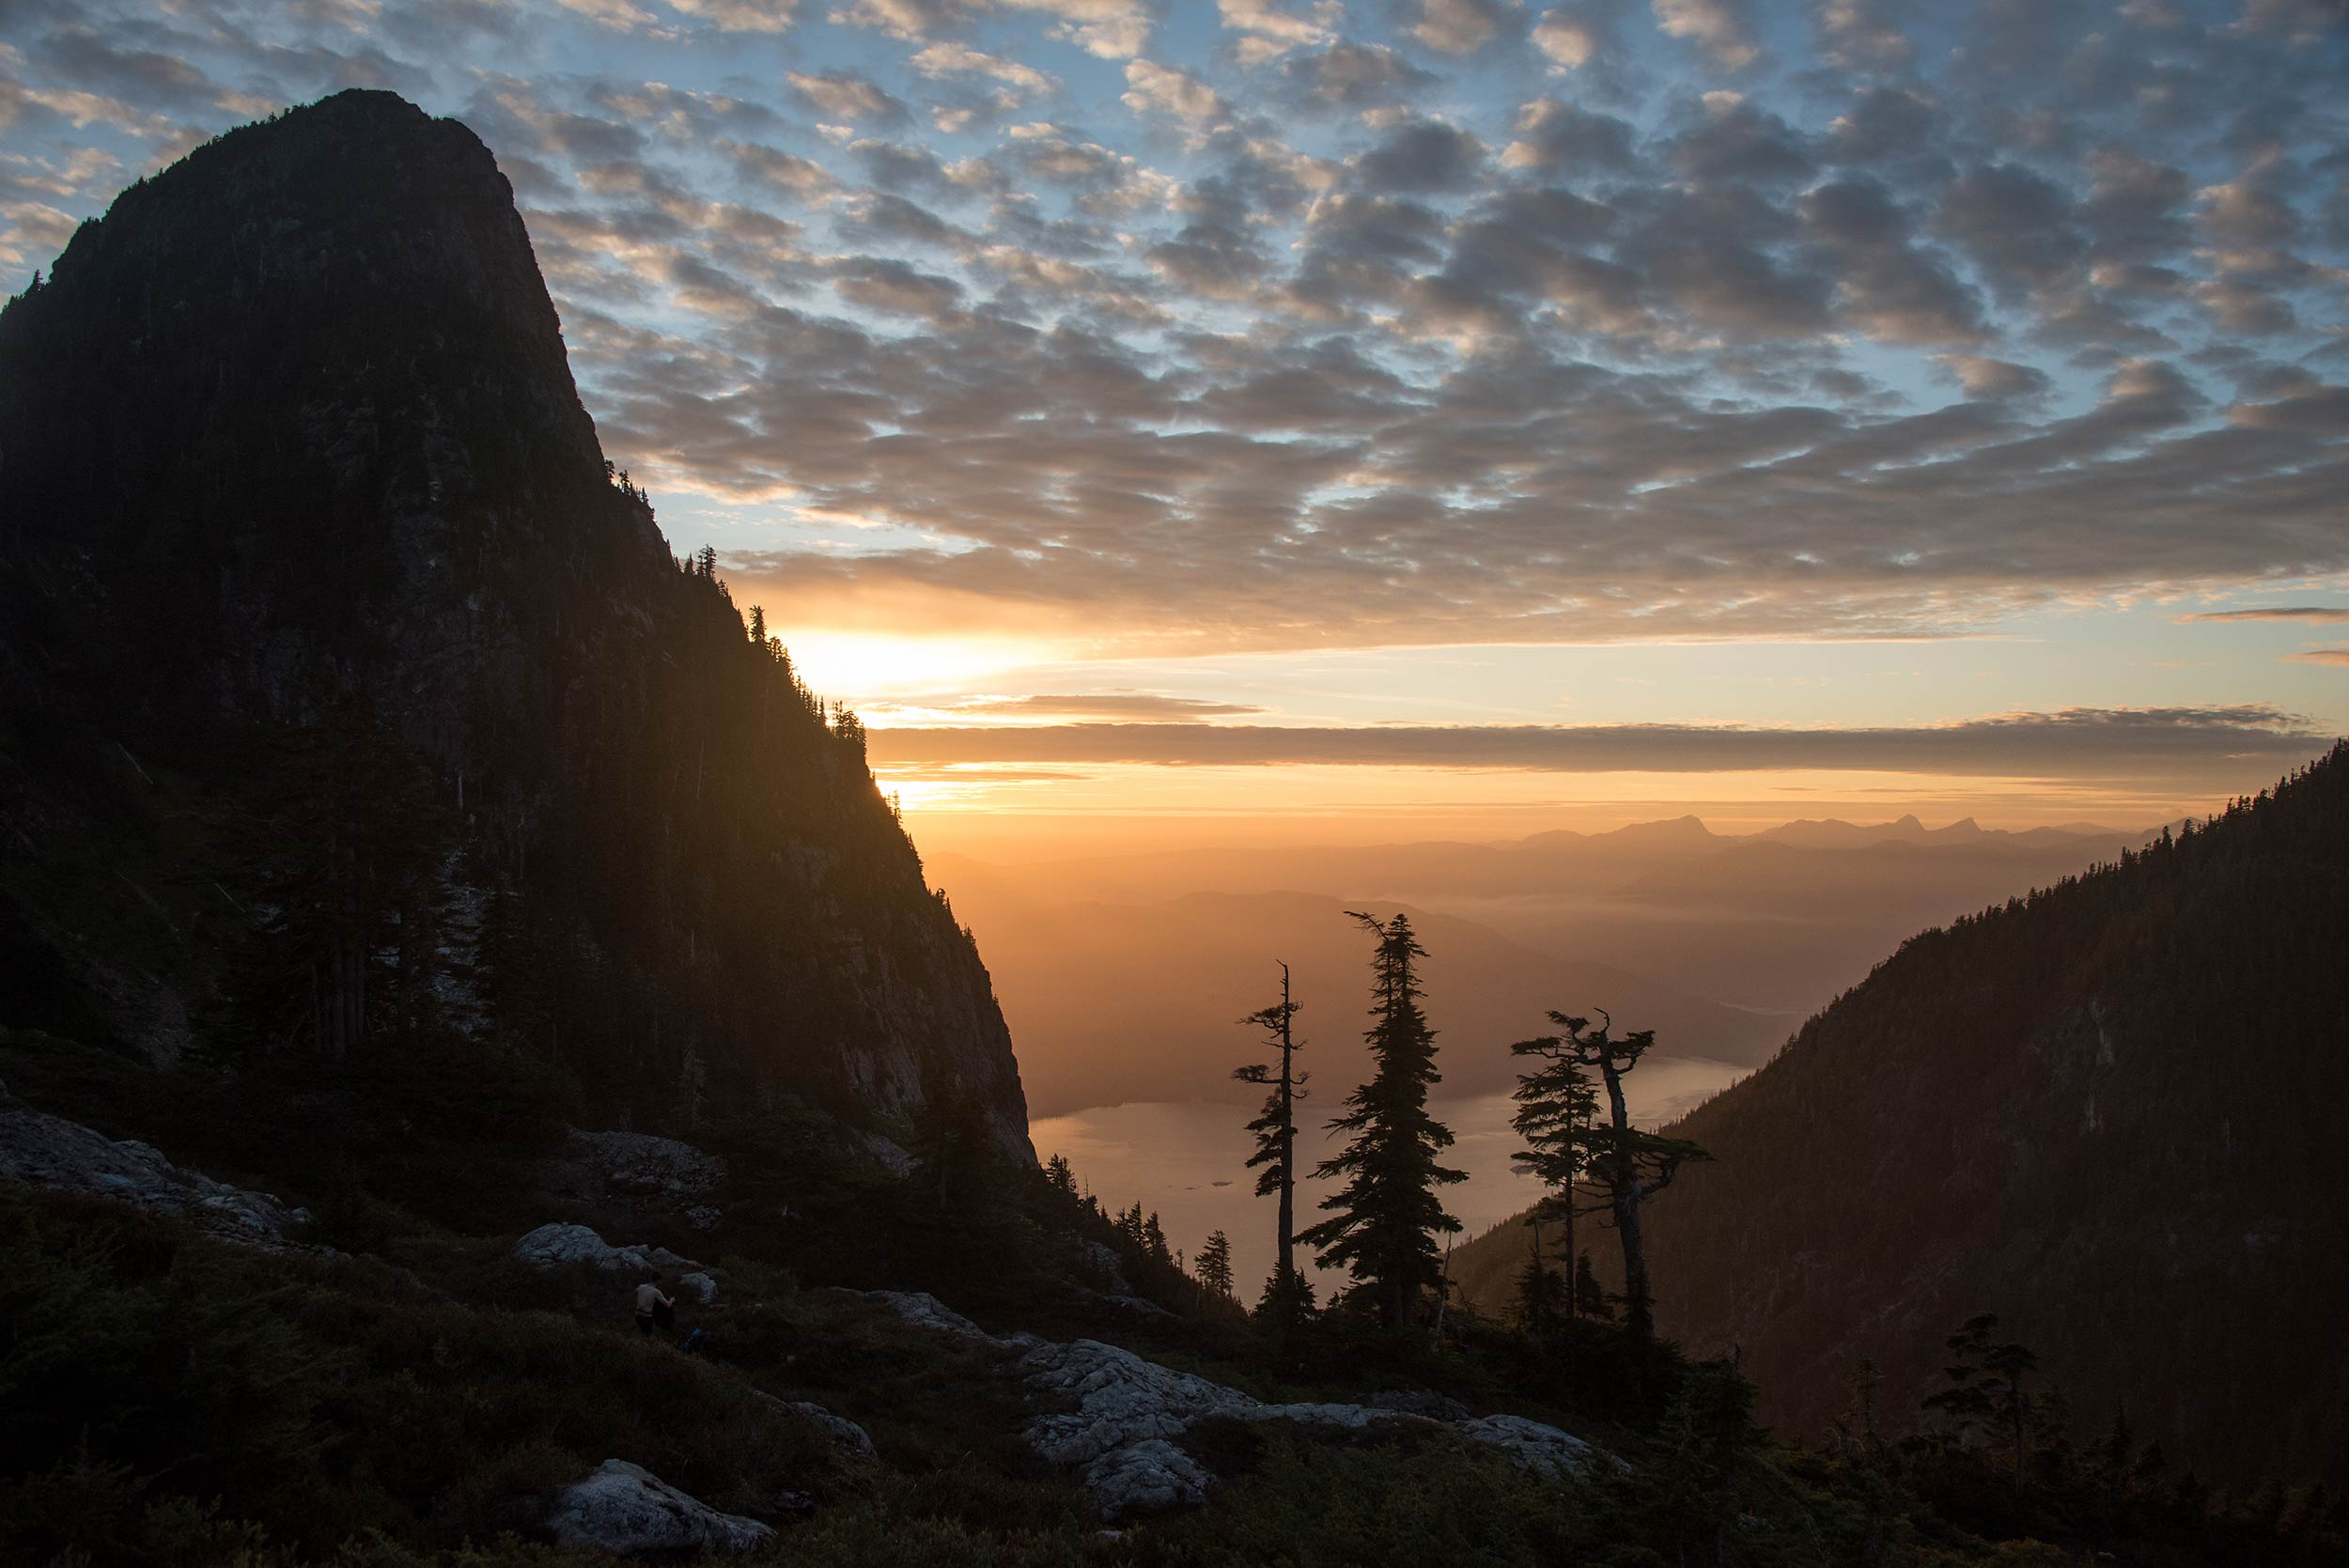 howe_sound_crest_trail_mt_harvey_sunset.jpg